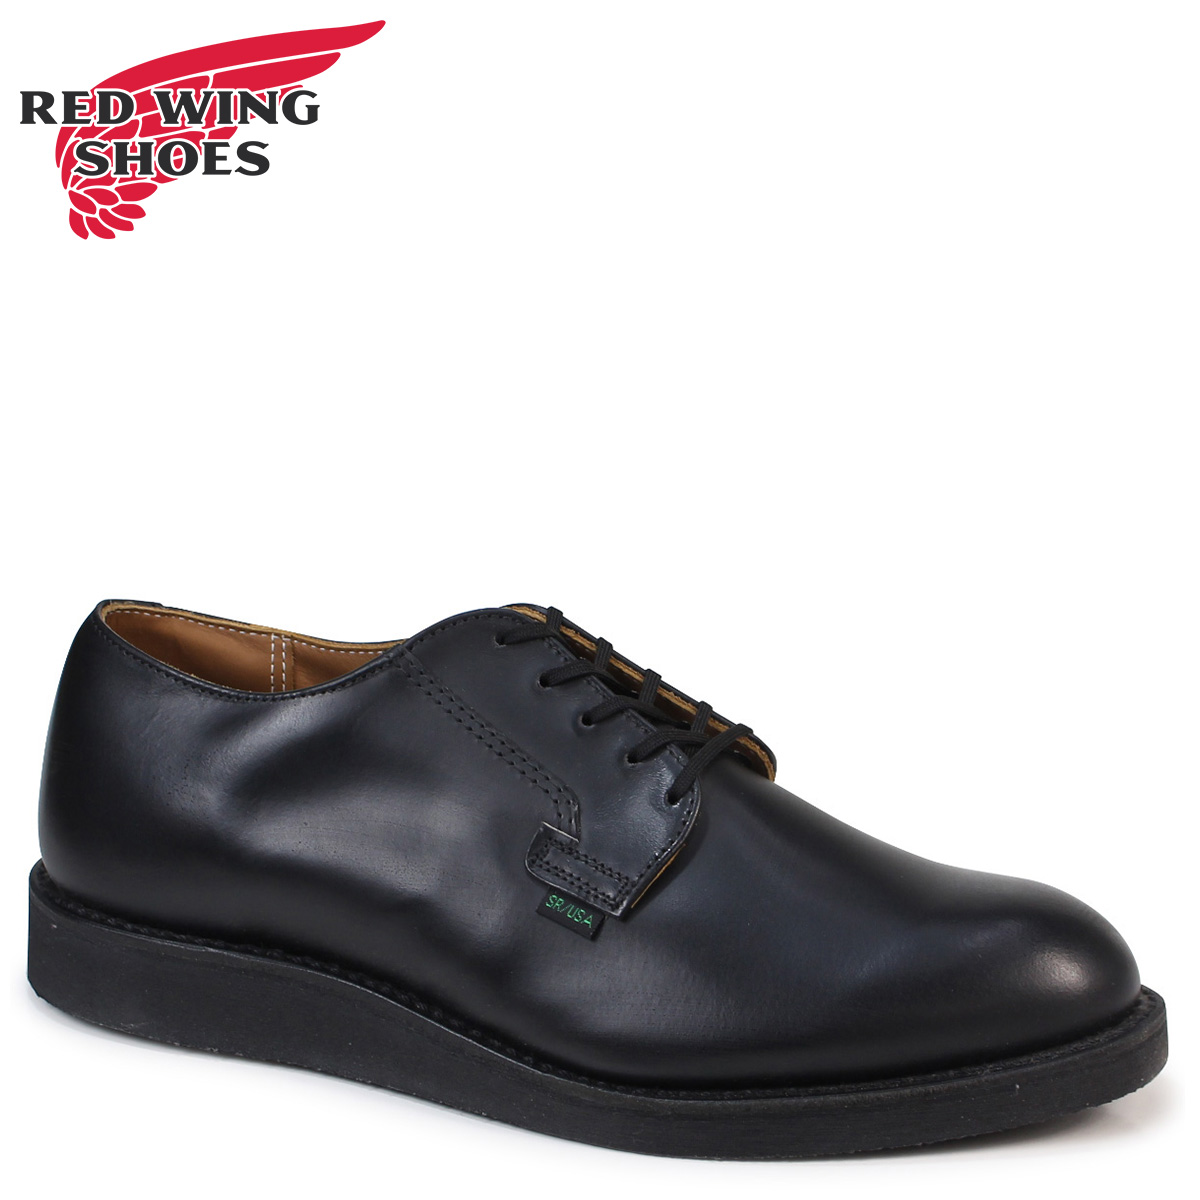 1d0955e63a RED WING red red wing shoes Oxford postman POSTMAN OXFORD men D Wise black  black 101